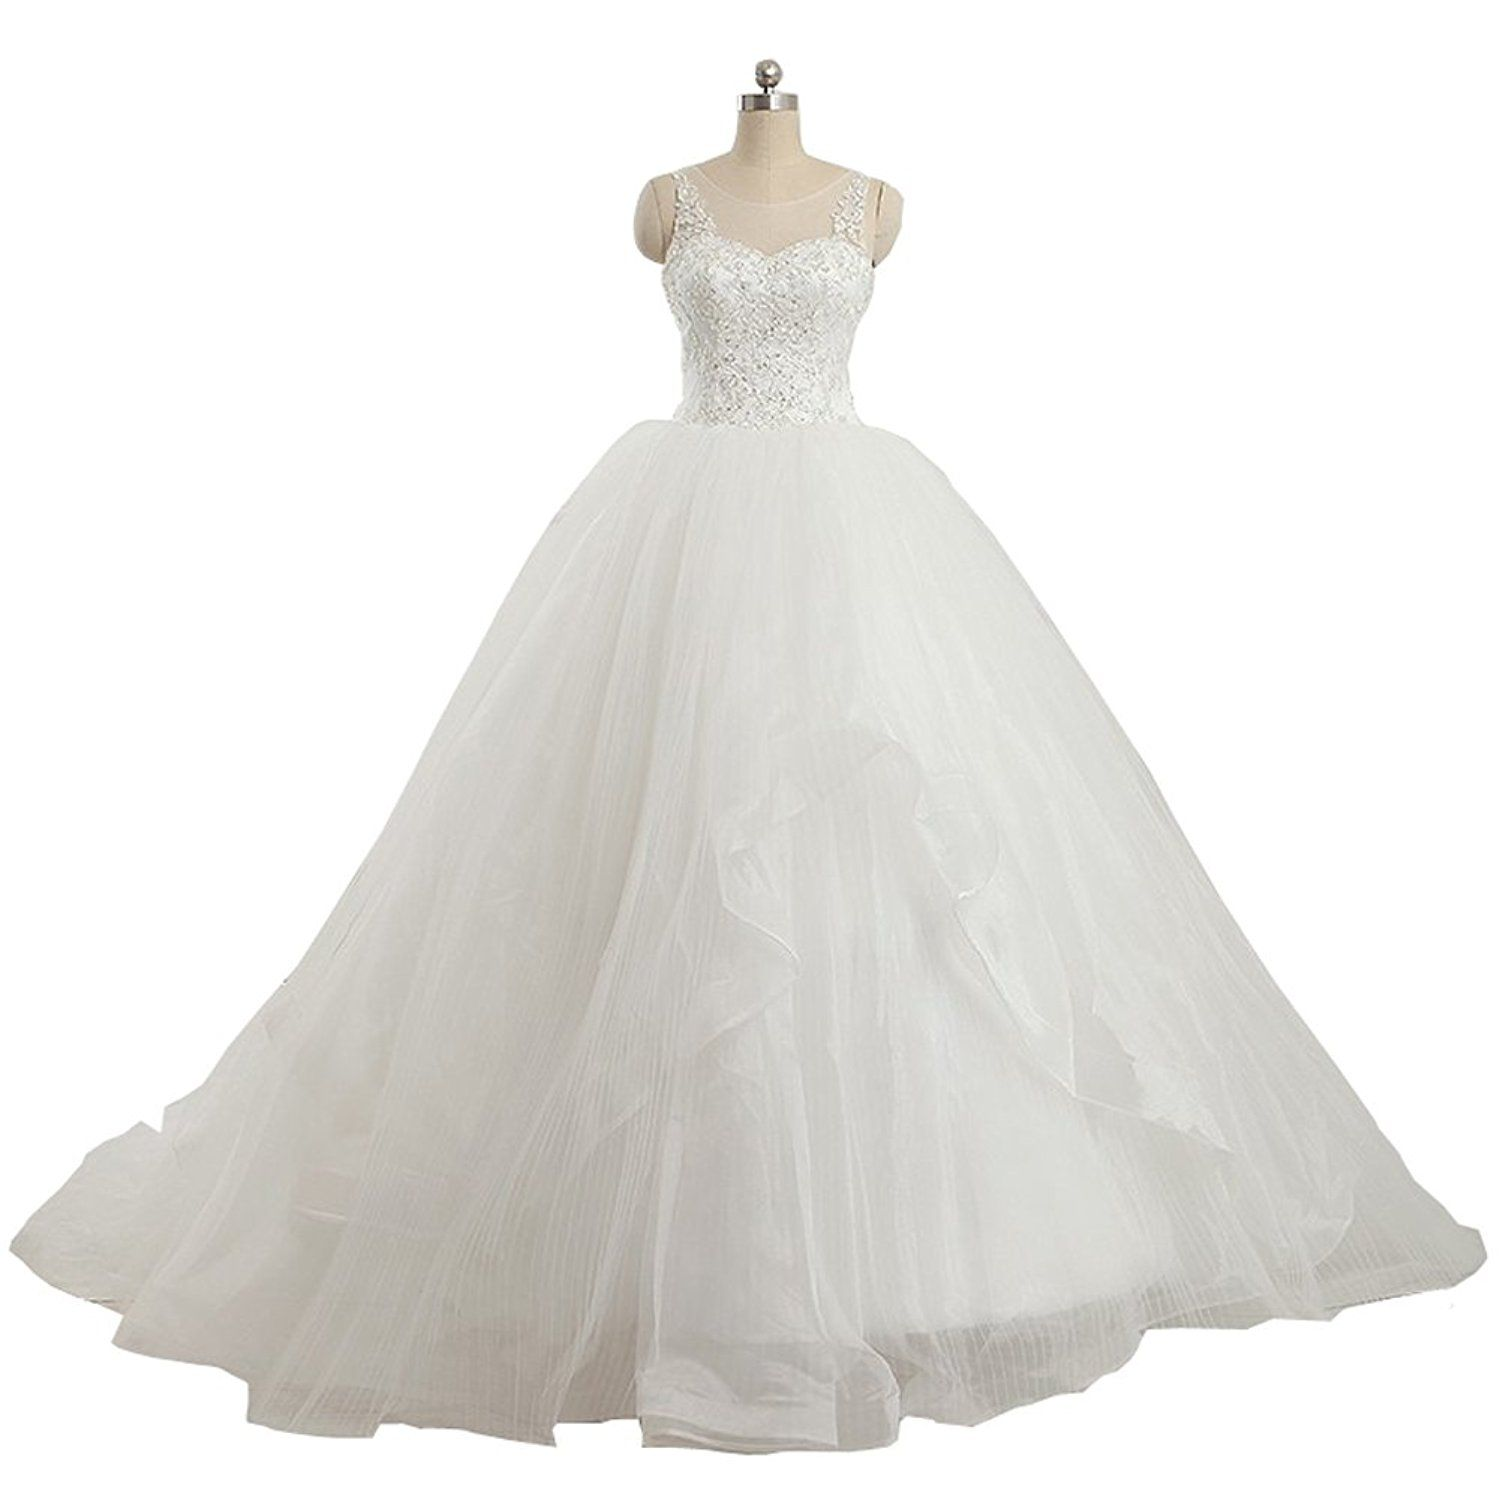 8b98d187c99 YIPEISHA Wedding Dress Ball Gown Tulle Bridal Beaded Applique Wedding Gown    Unbelievable item right here!   wedding dresses